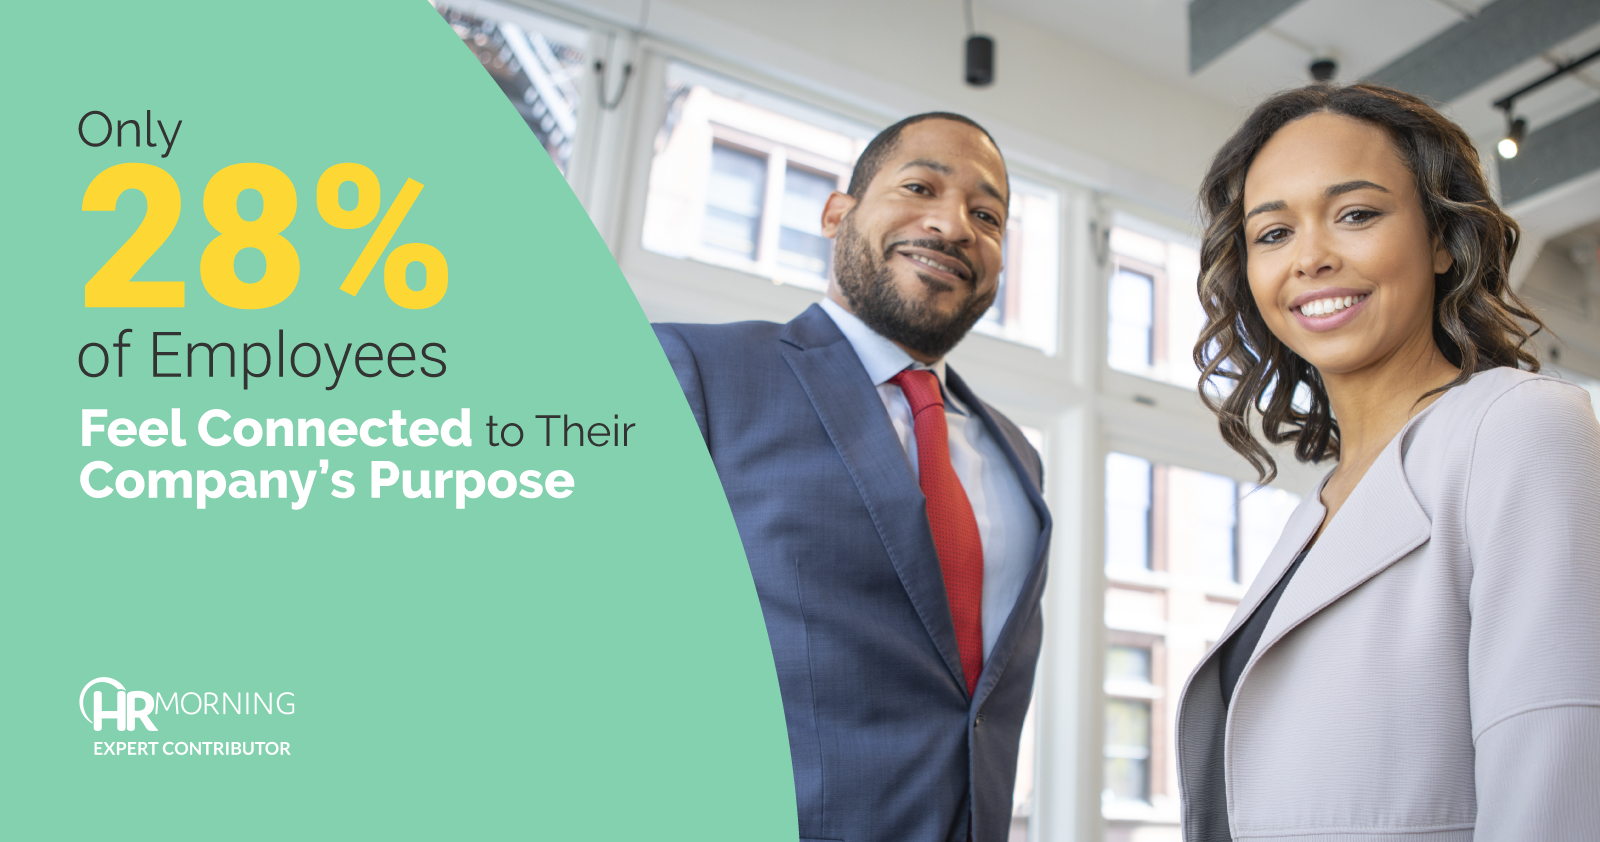 Only 28% of Employees Feel Connected to Their Company's Purpose